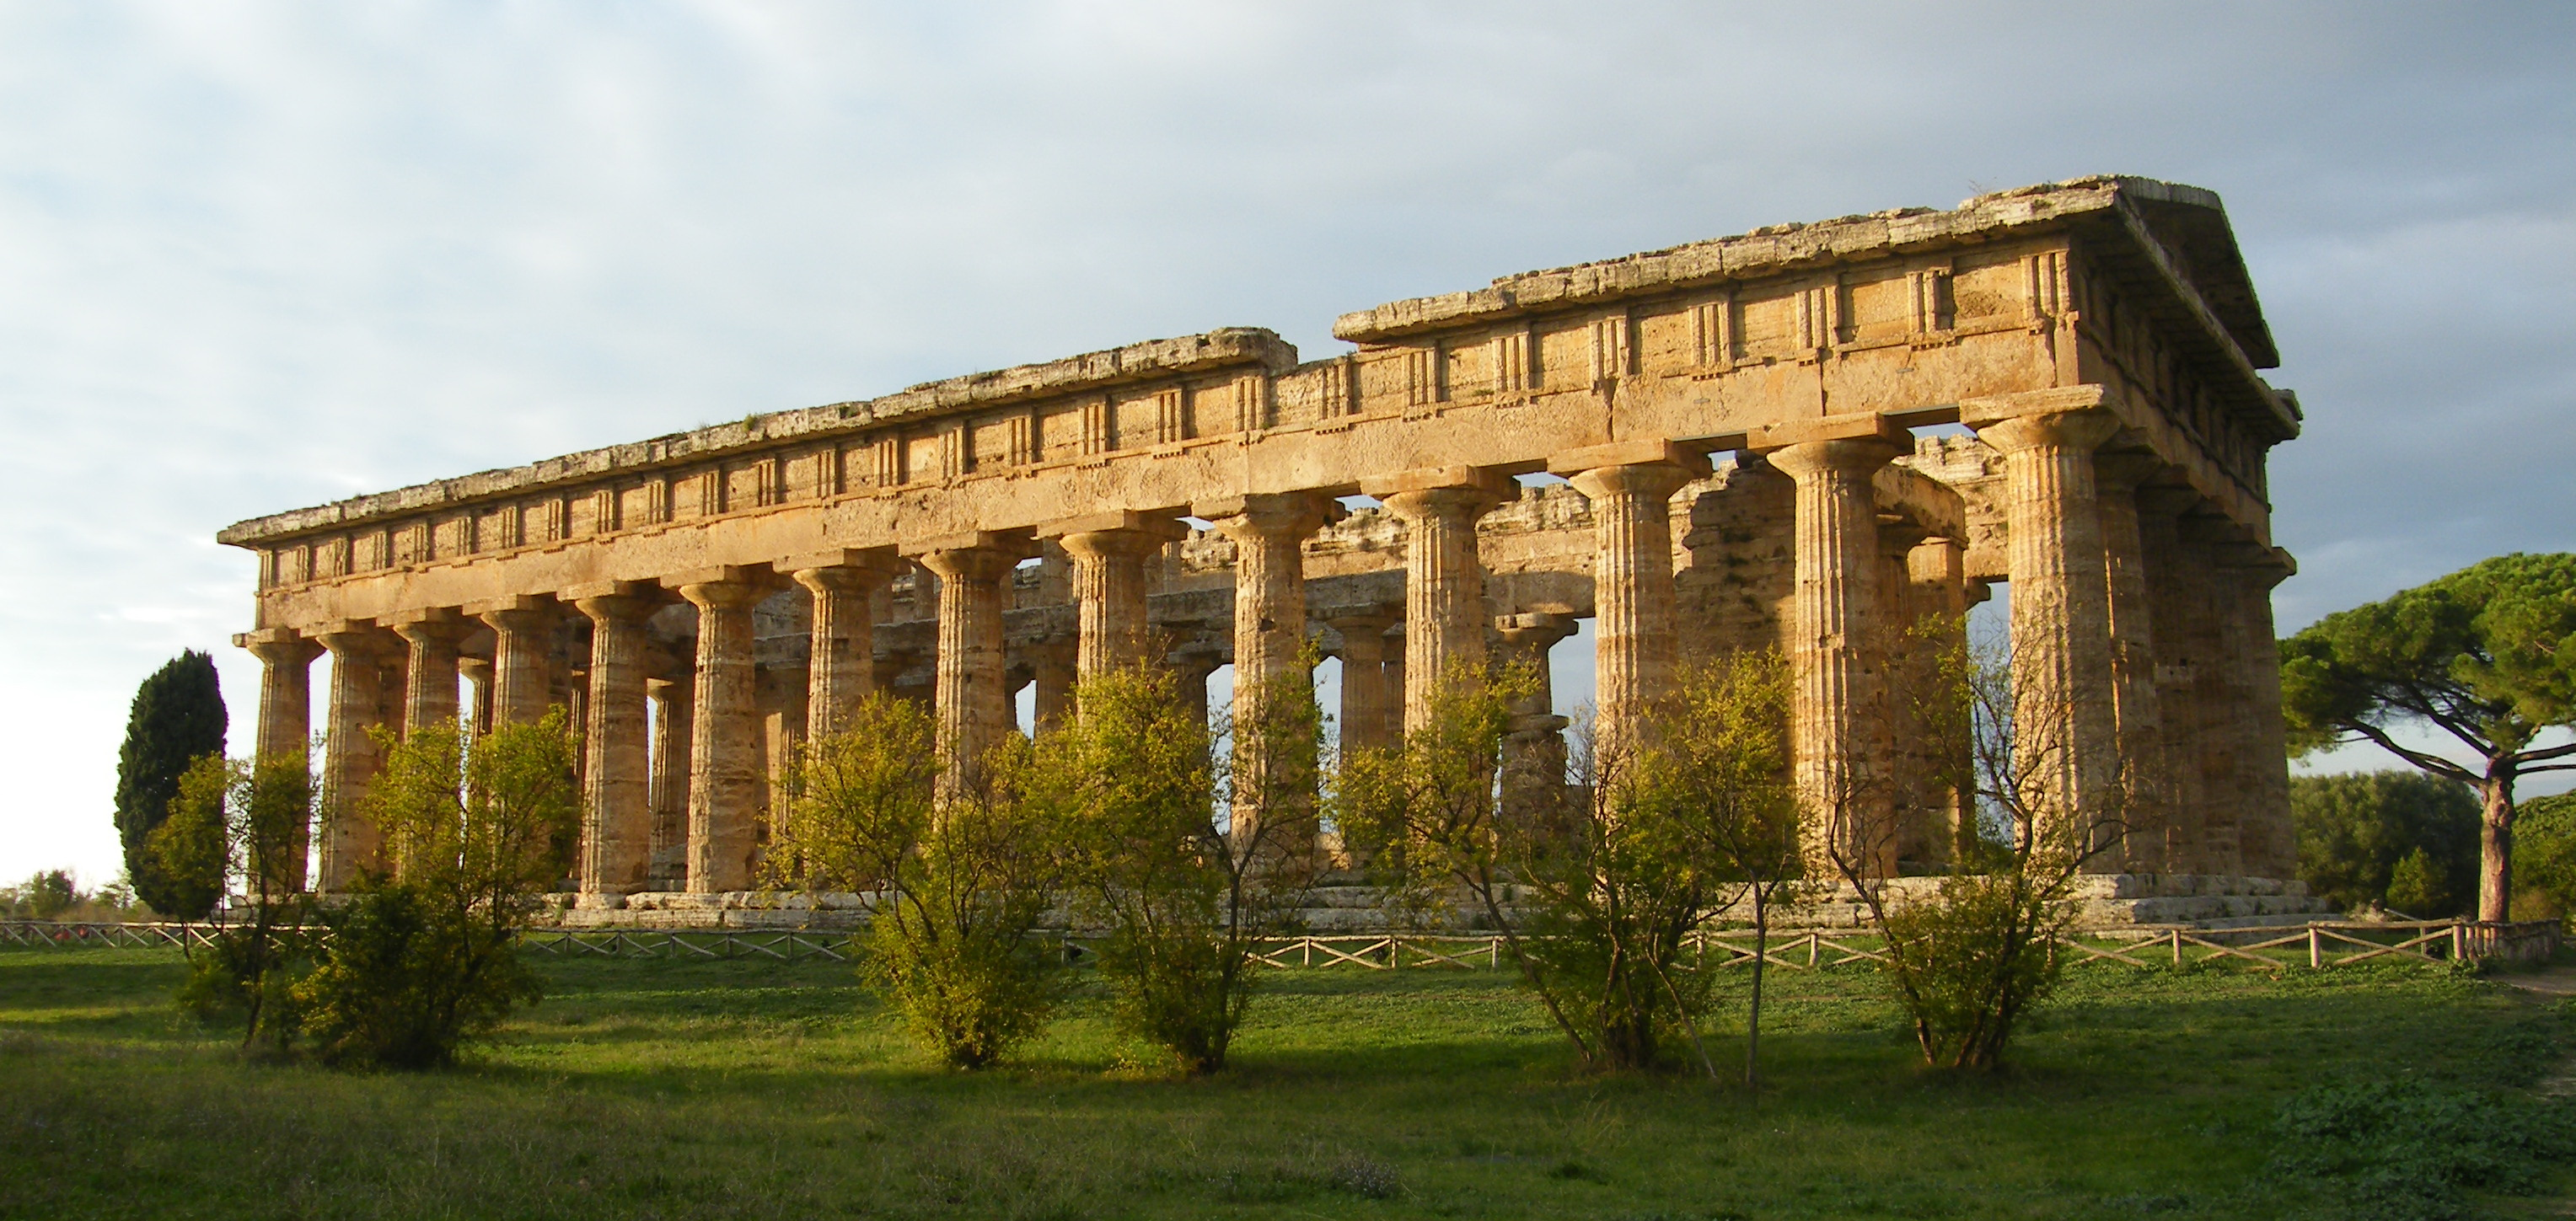 File:Temple of Poseidon (Paestum) 3.jpg